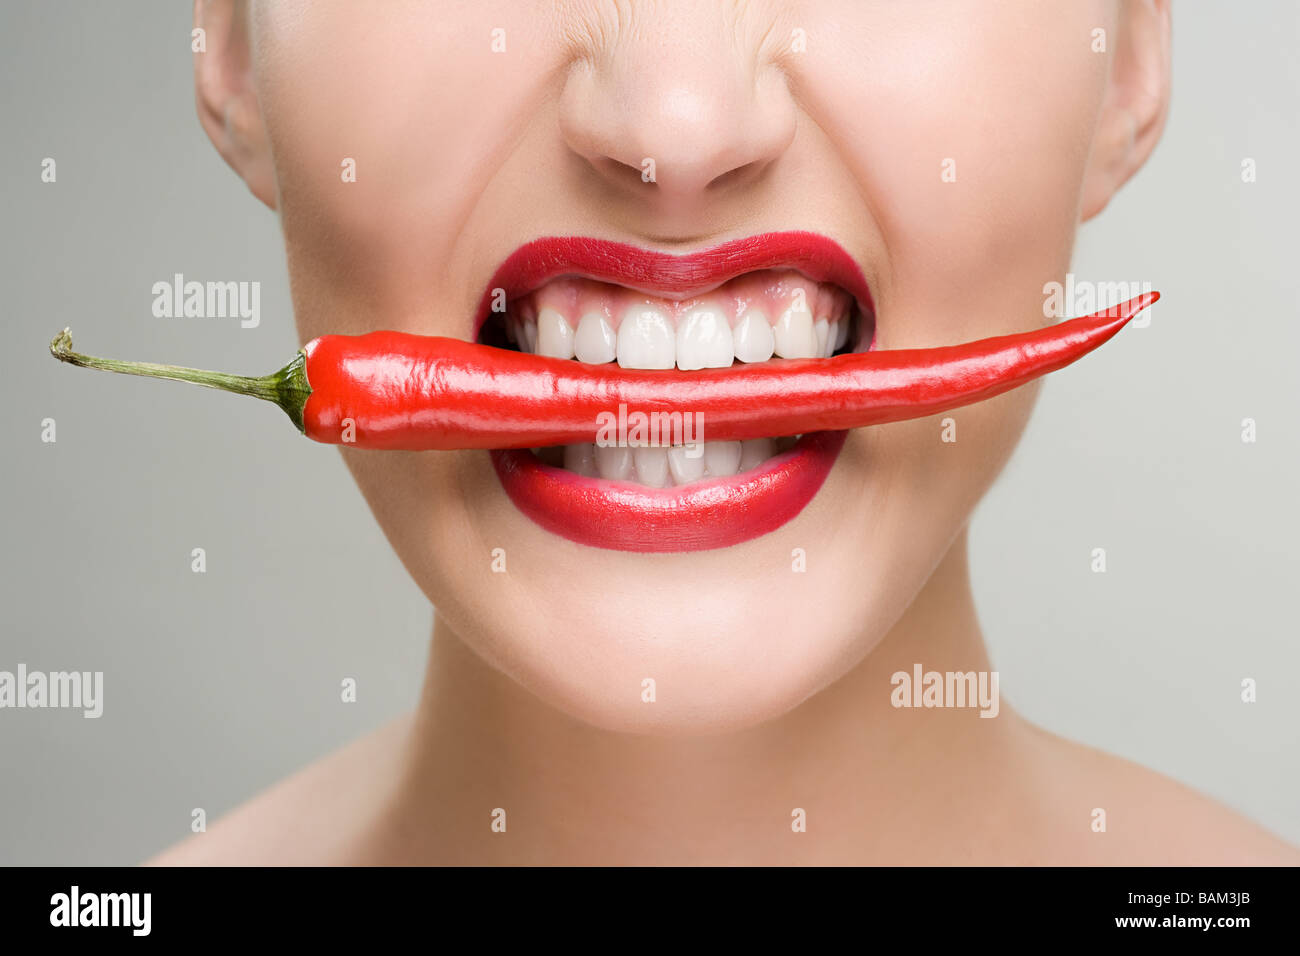 Woman with a red chili pepper between her teeth - Stock Image